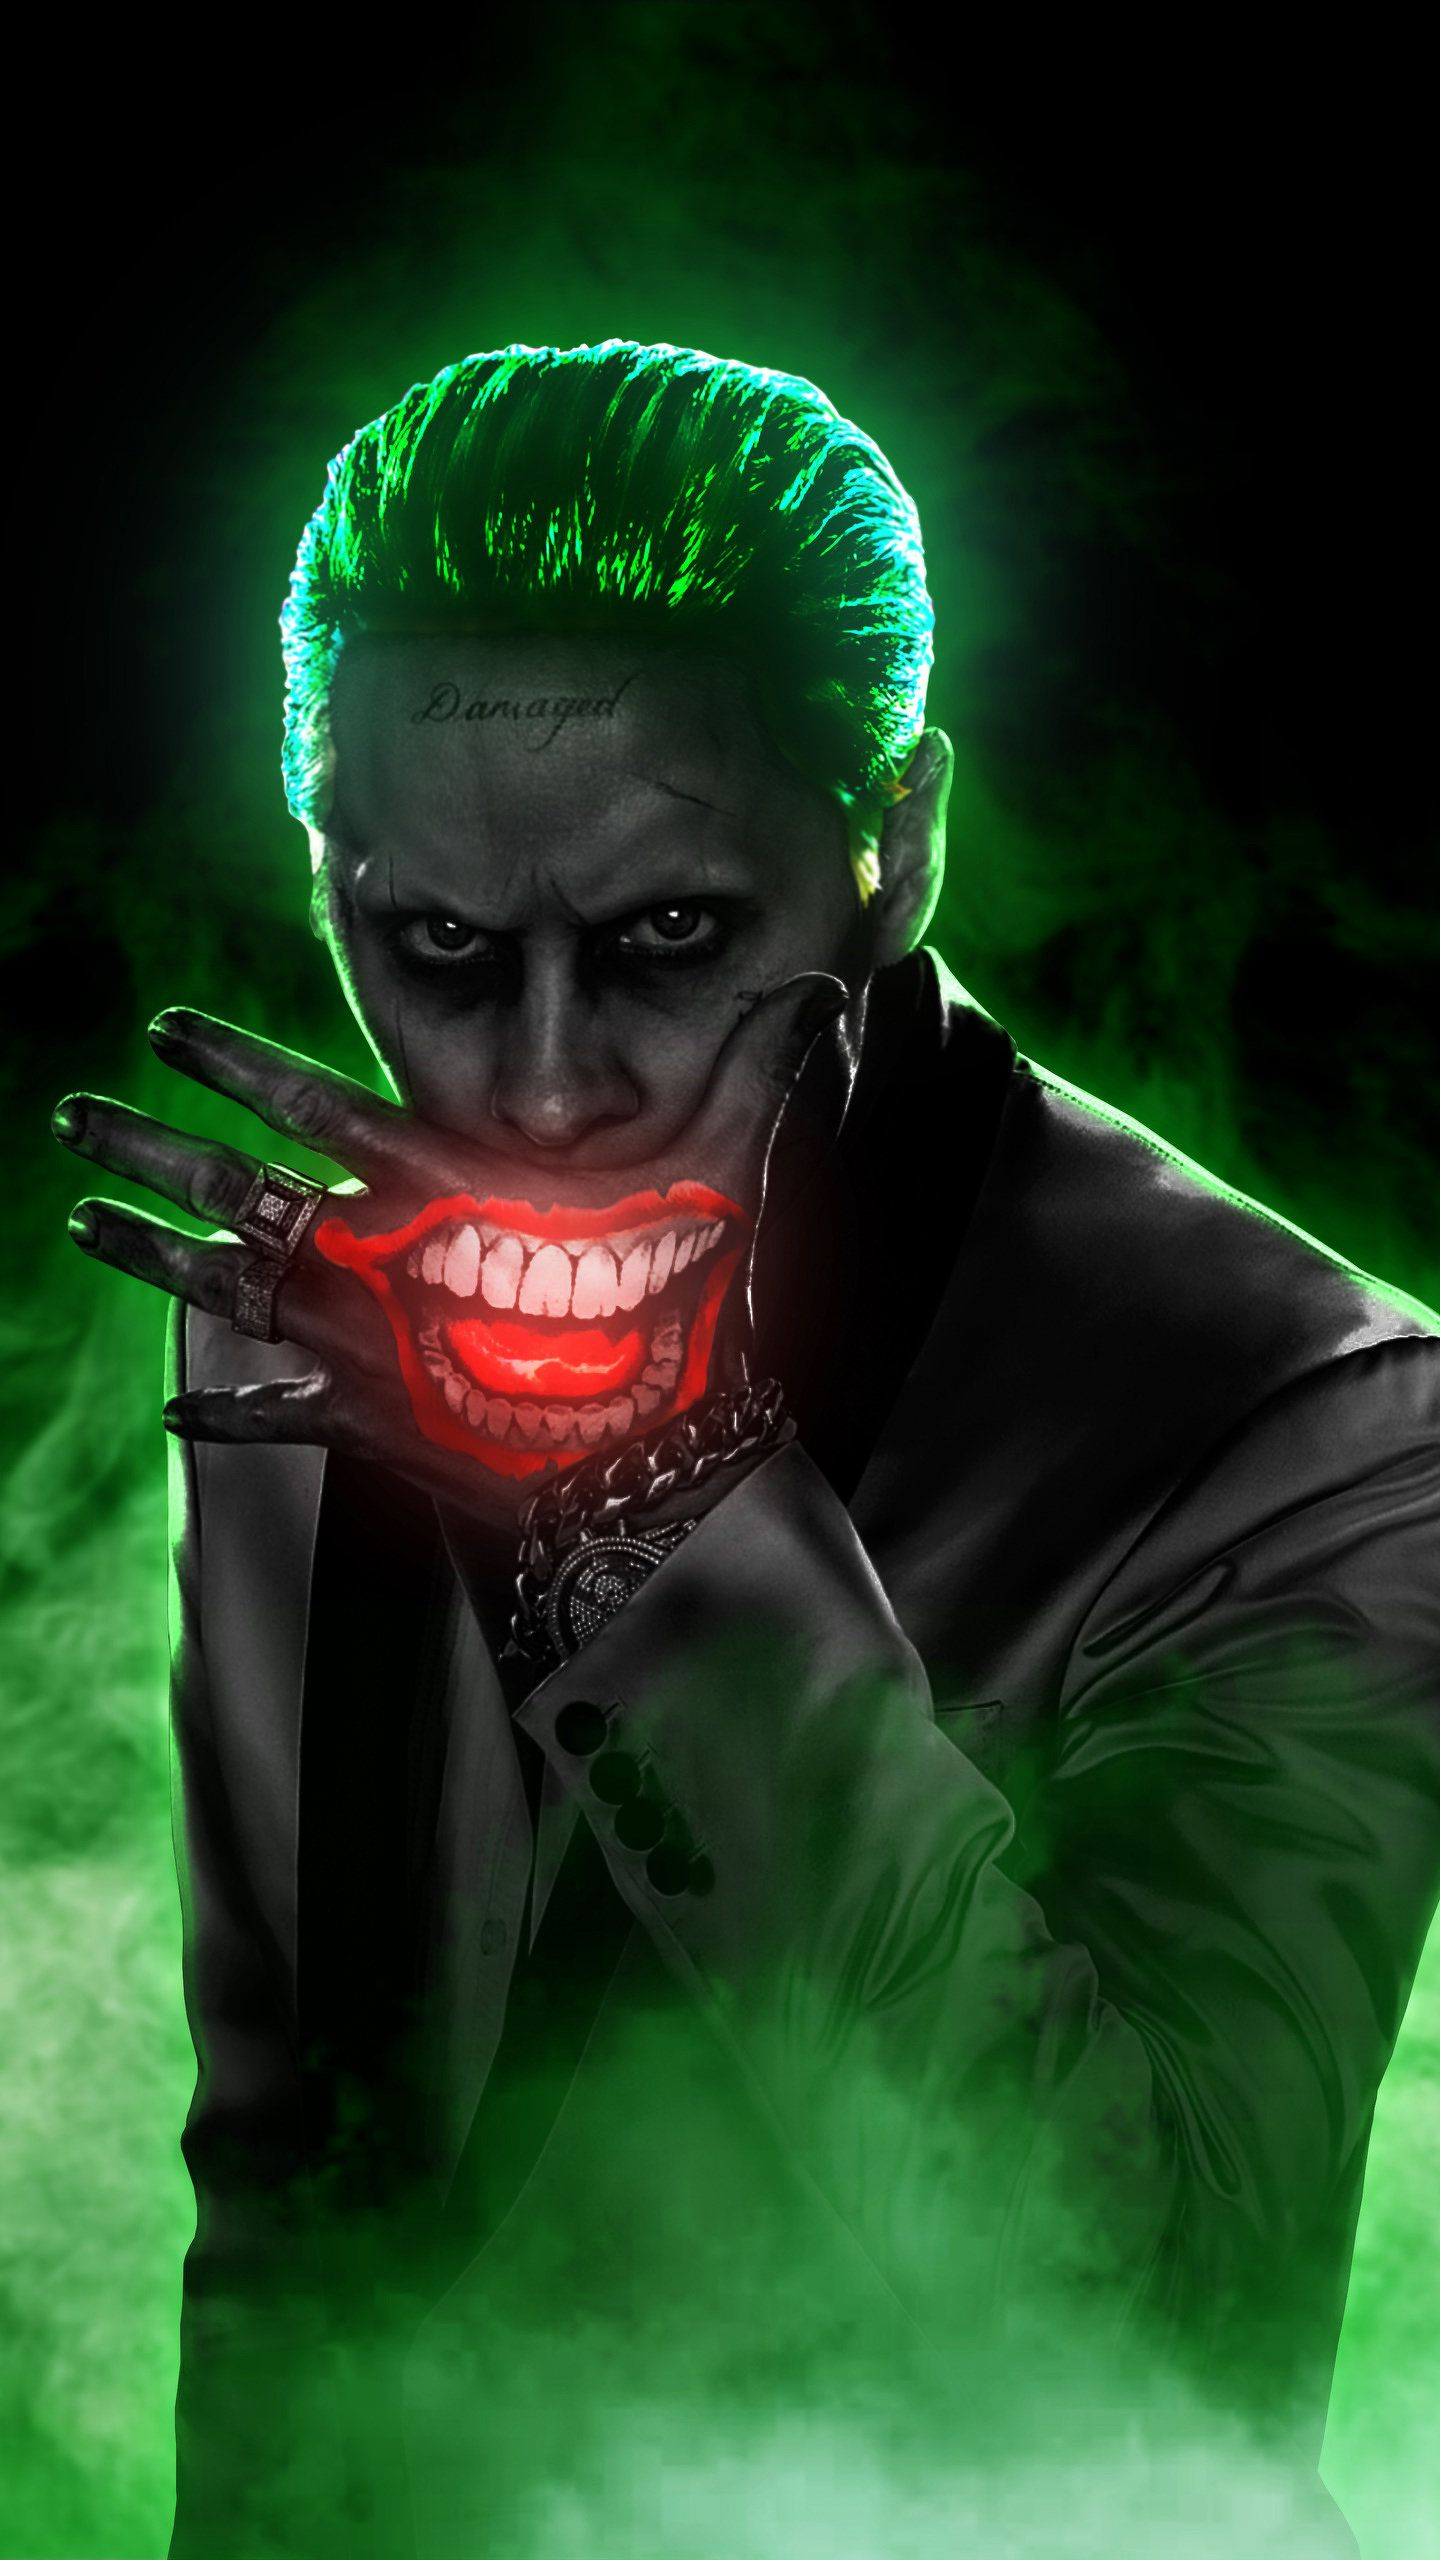 Jared Leto Joker 4k Hd Wallpaper 1440x2560 Joker Wallpapers